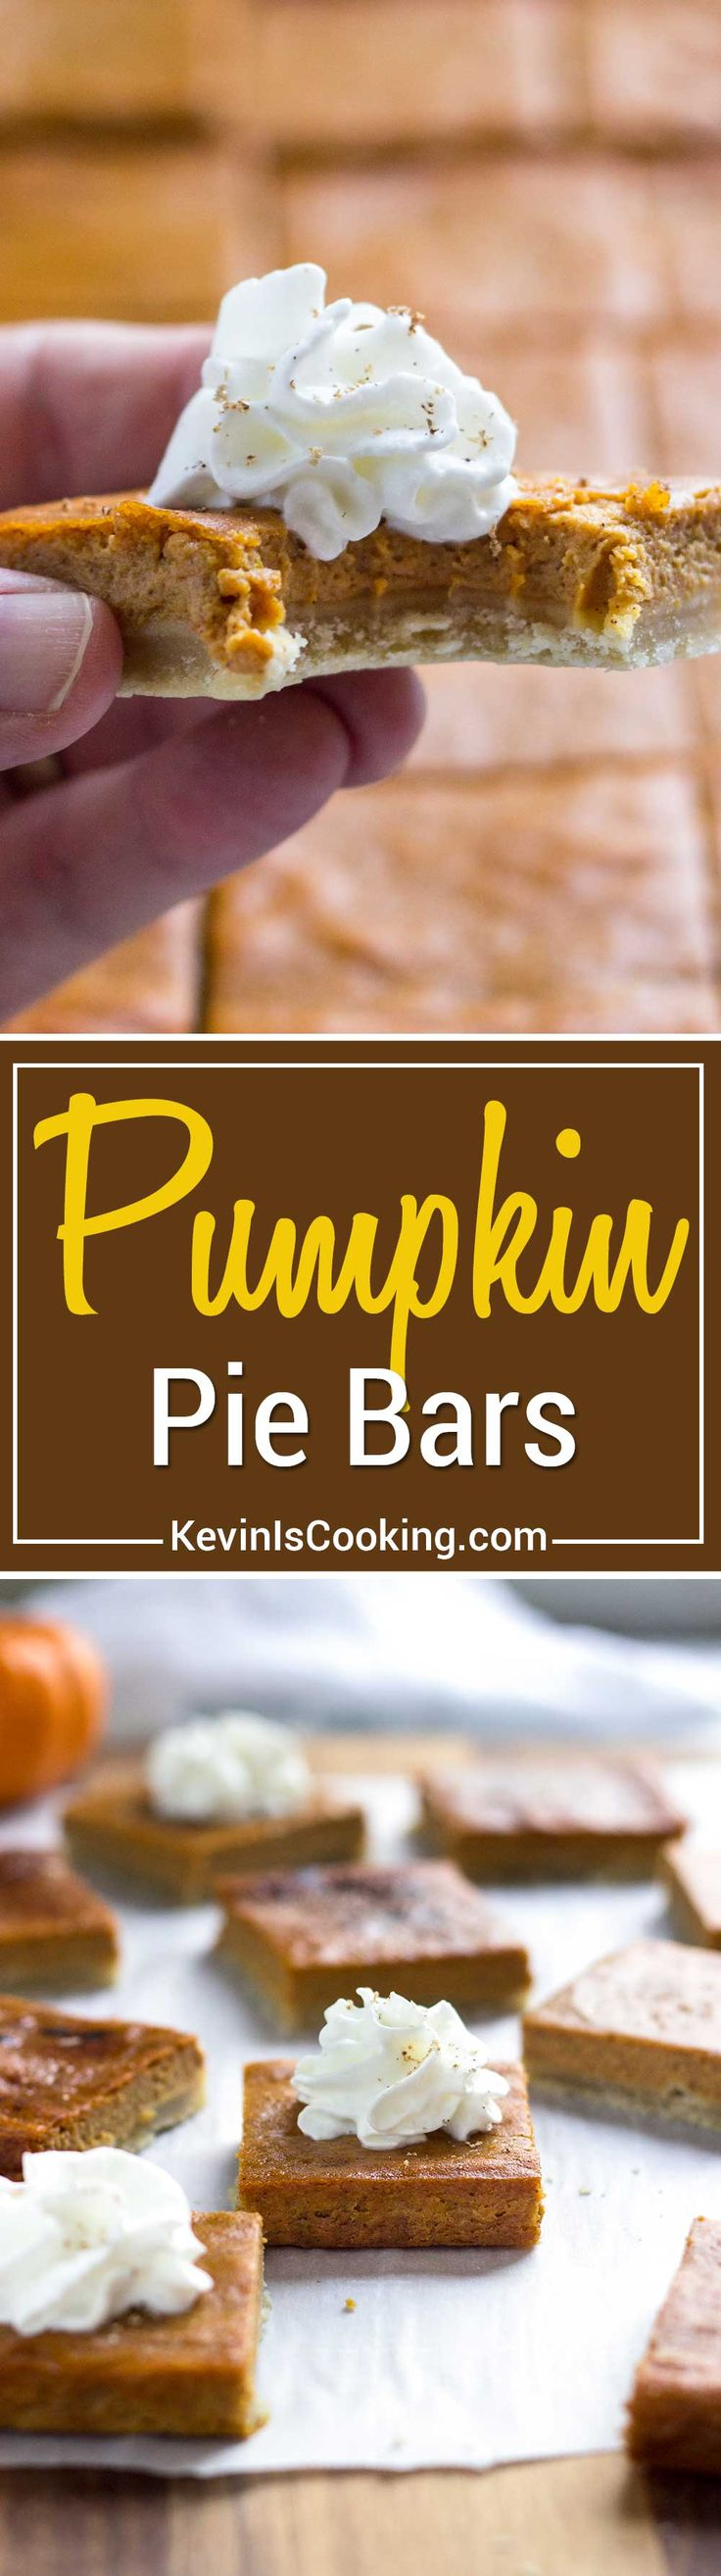 Slab pies come with all the goodness of a slice of pie, but in bar form. These Pumpkin Pie Bars are made right in the sheet pan and easily cut up for a hand held dessert bite. No washing plates and forks!